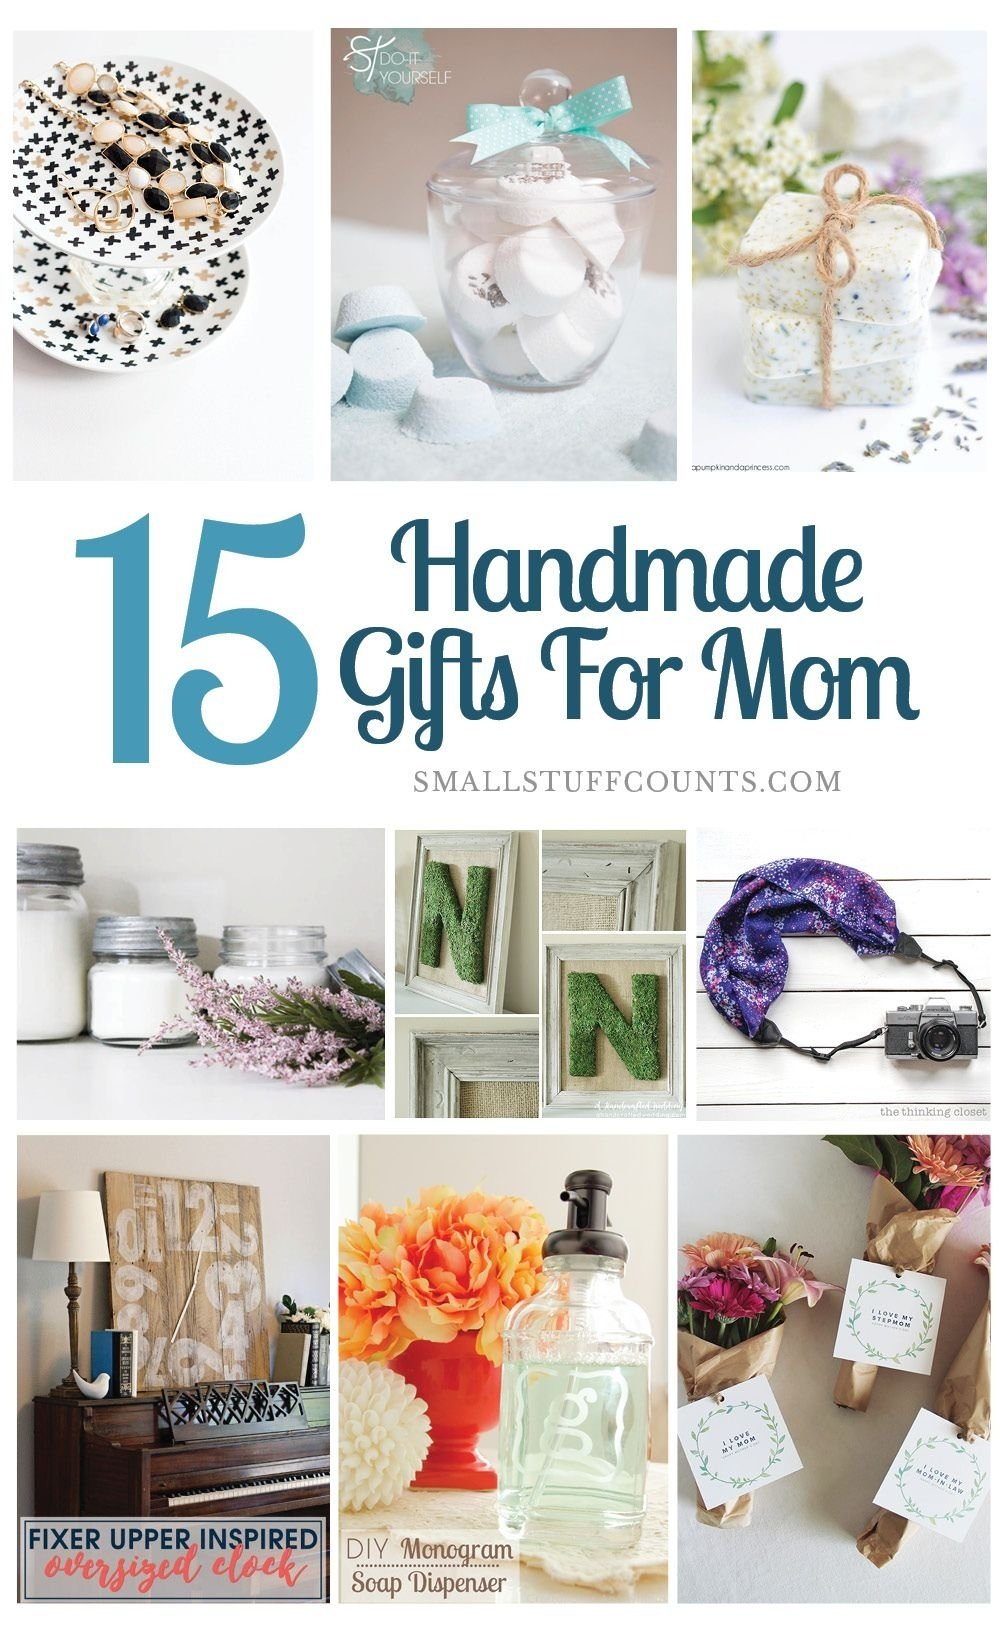 10 Beautiful Ideas For Mom For Christmas beautiful diy gift ideas for mom gift 11